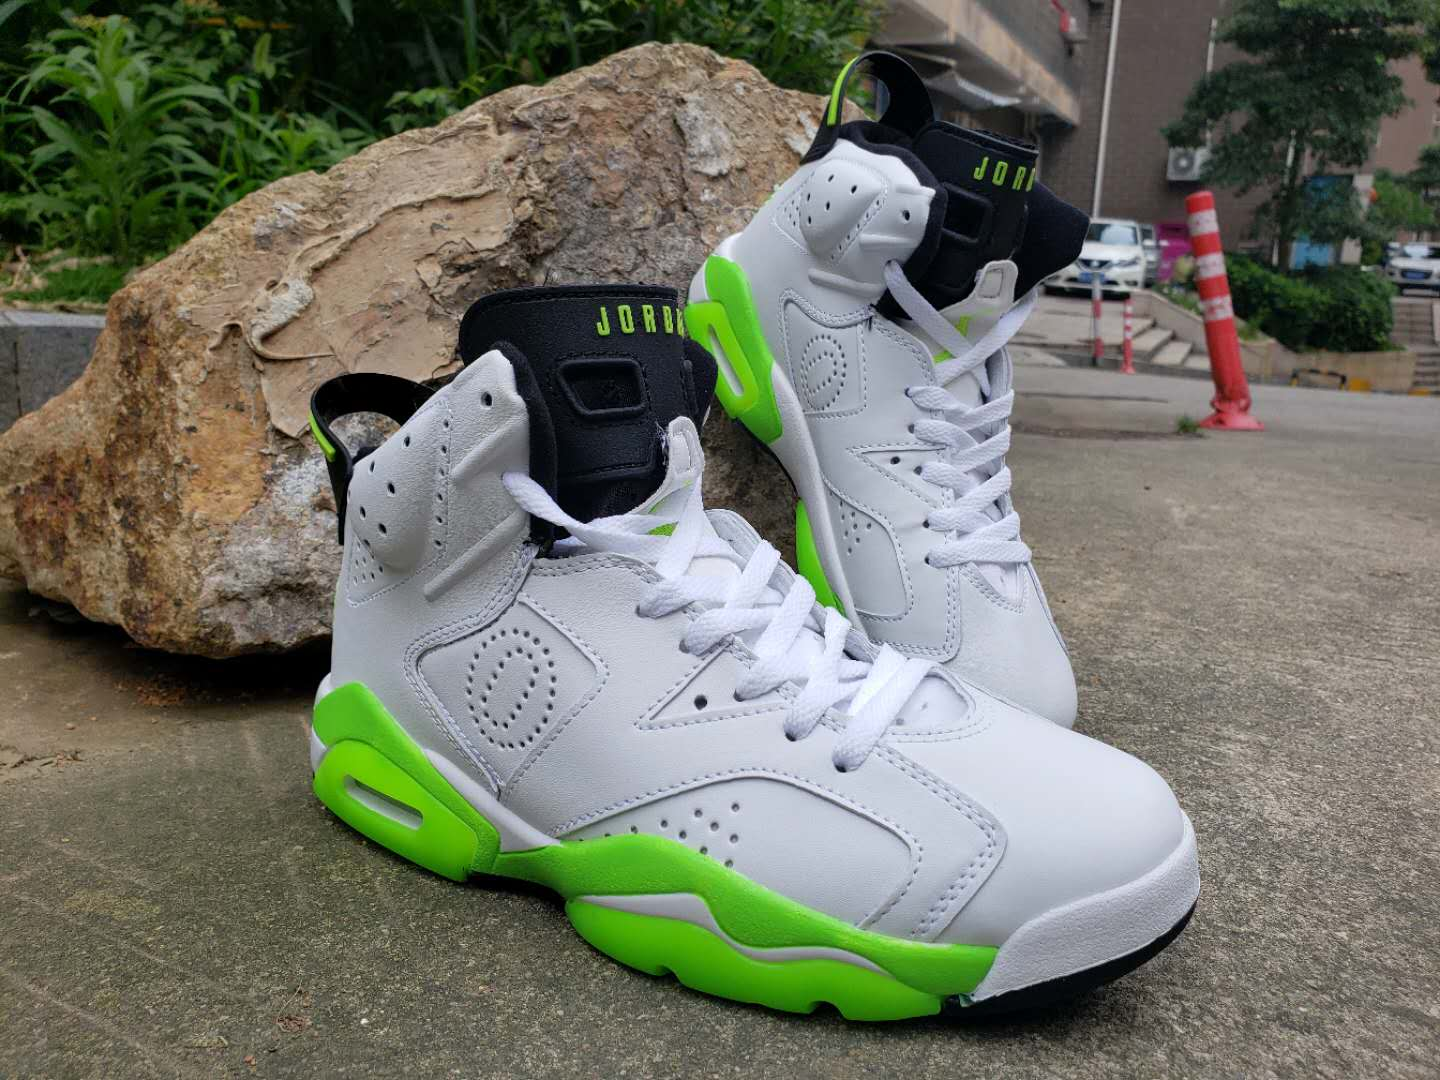 Air Jordan 6 Retro White Green Wing Shoes